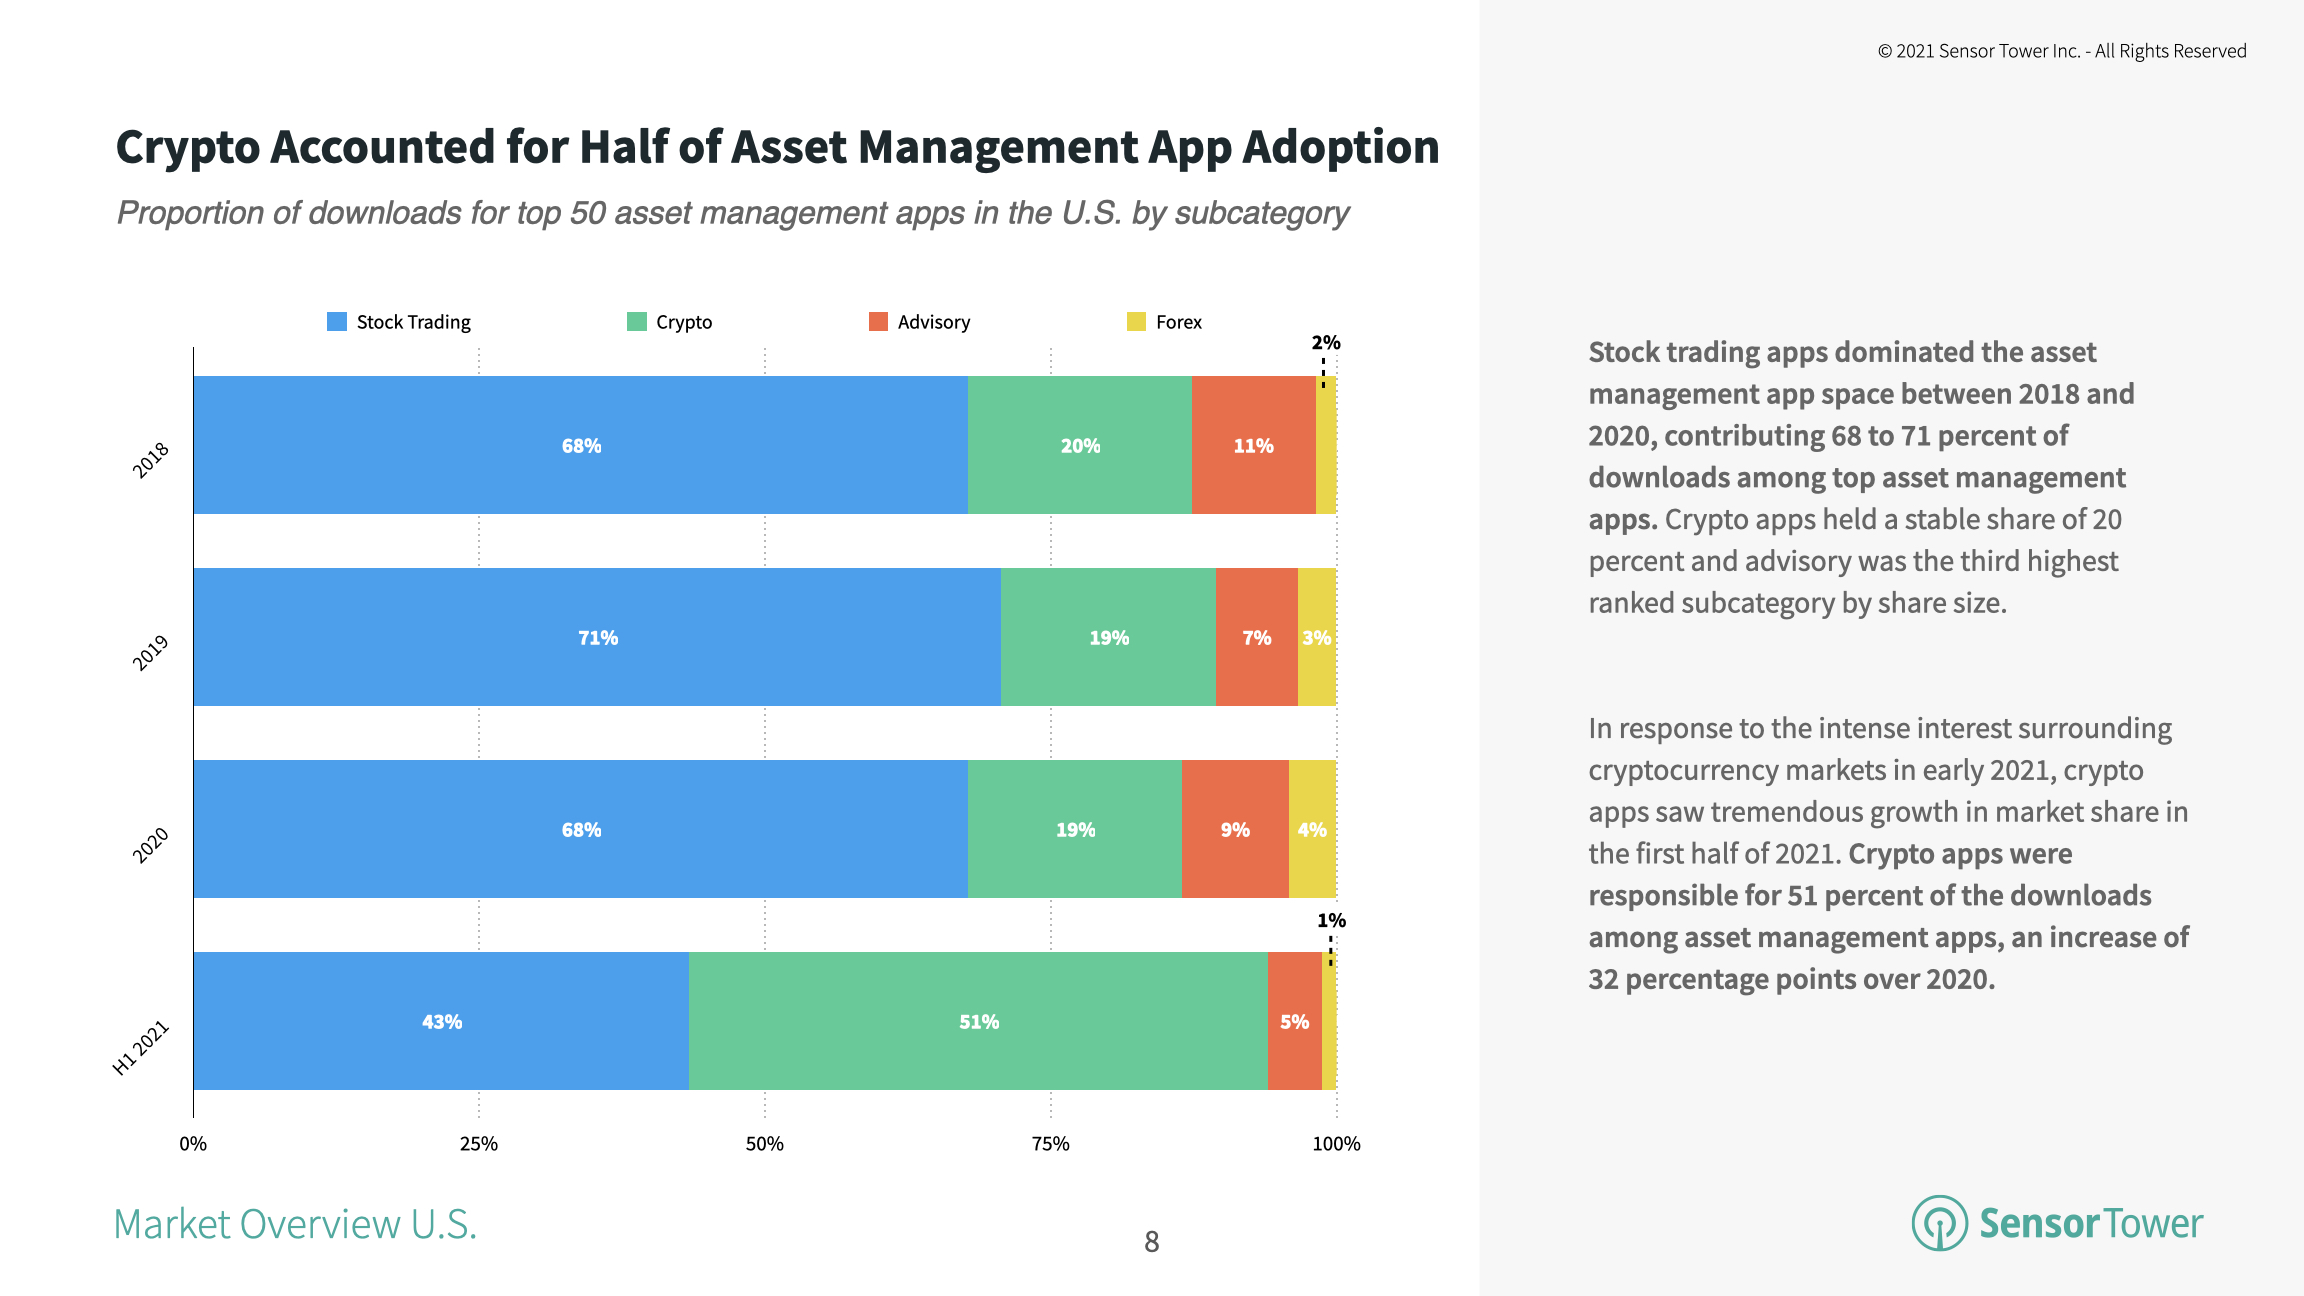 Crypto apps represented 51 percent of top asset management app downloads in 1H 2021